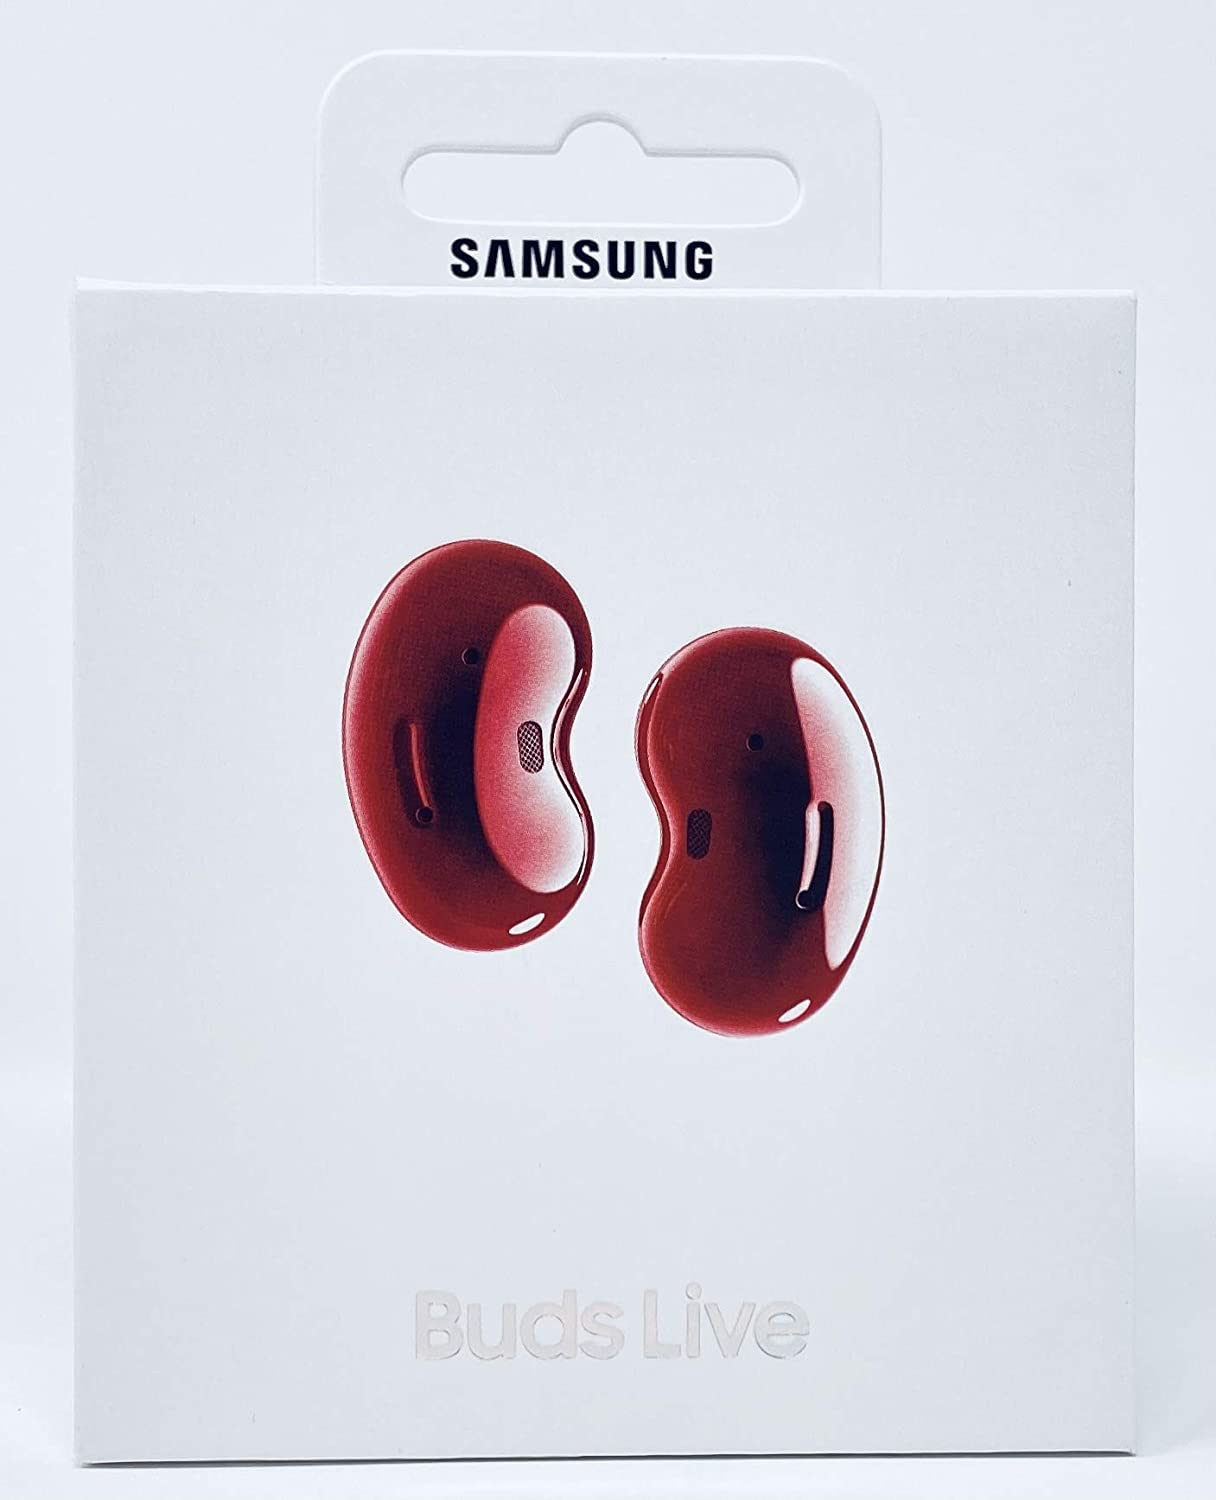 Samsung Galaxy Buds Live, Wireless Earbuds w/Active Noise Cancelling (Mystic Red)